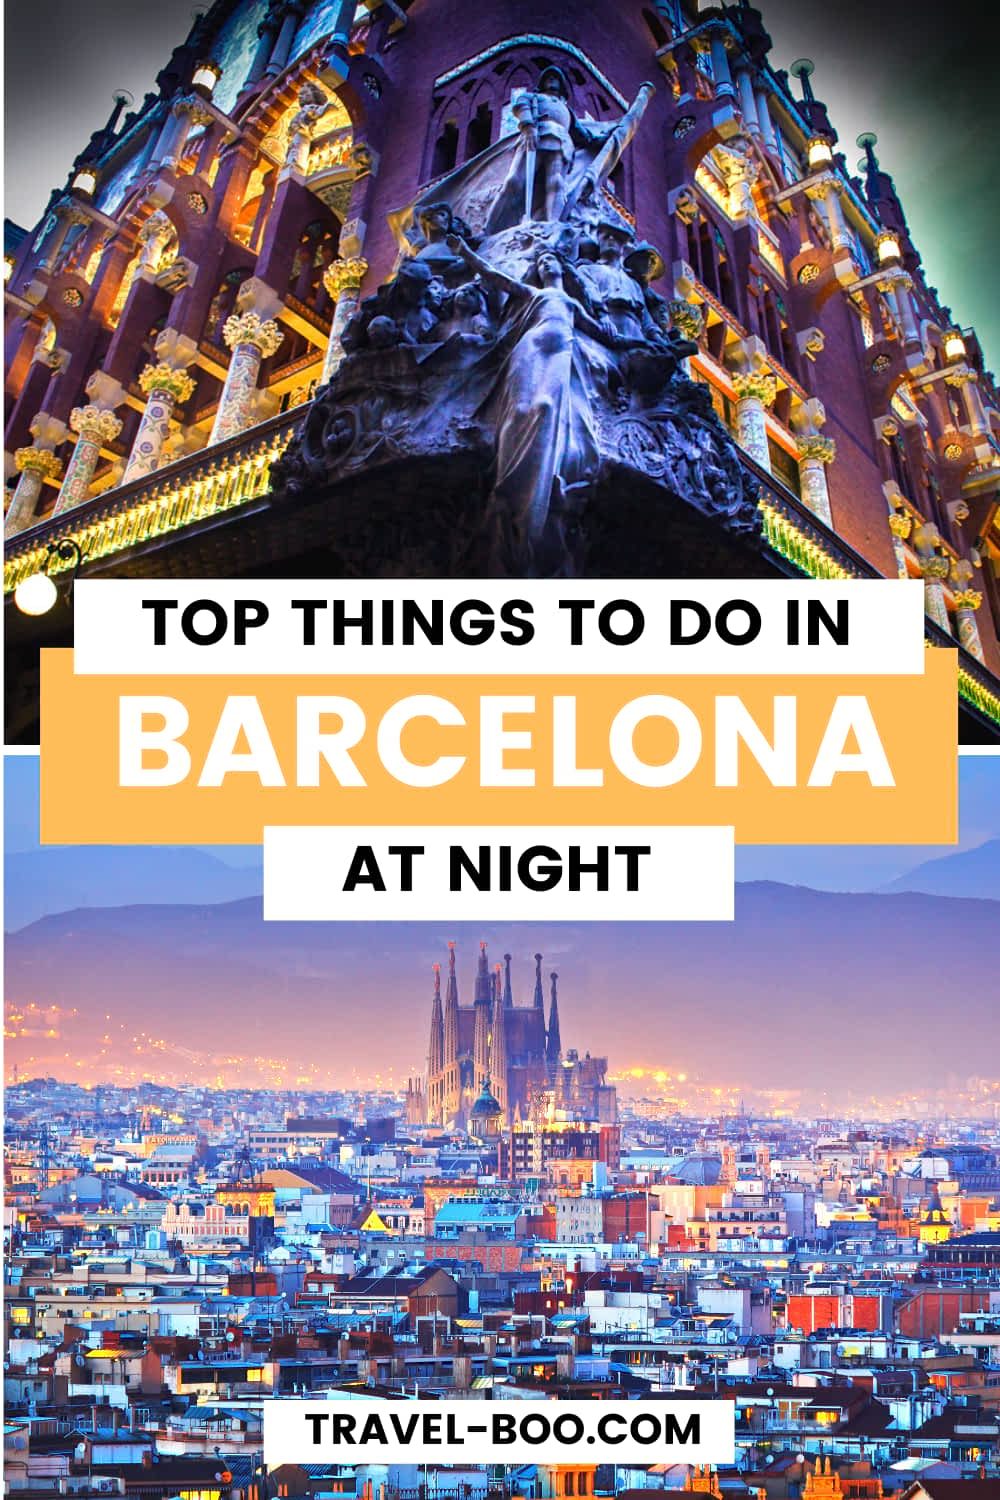 Top Things to do in Barcelona at night. Check out this guide on all the top things to do in Barcelona at night-time. #barcelonaspain #barcelona #spaintravel #barcelonatravel | Barcelona Spain | Barcelona | Barcelona Spain Things to do | Spain Travel Guide | Spain Travel Things to do | Europe Travel | Europe Travel Guide